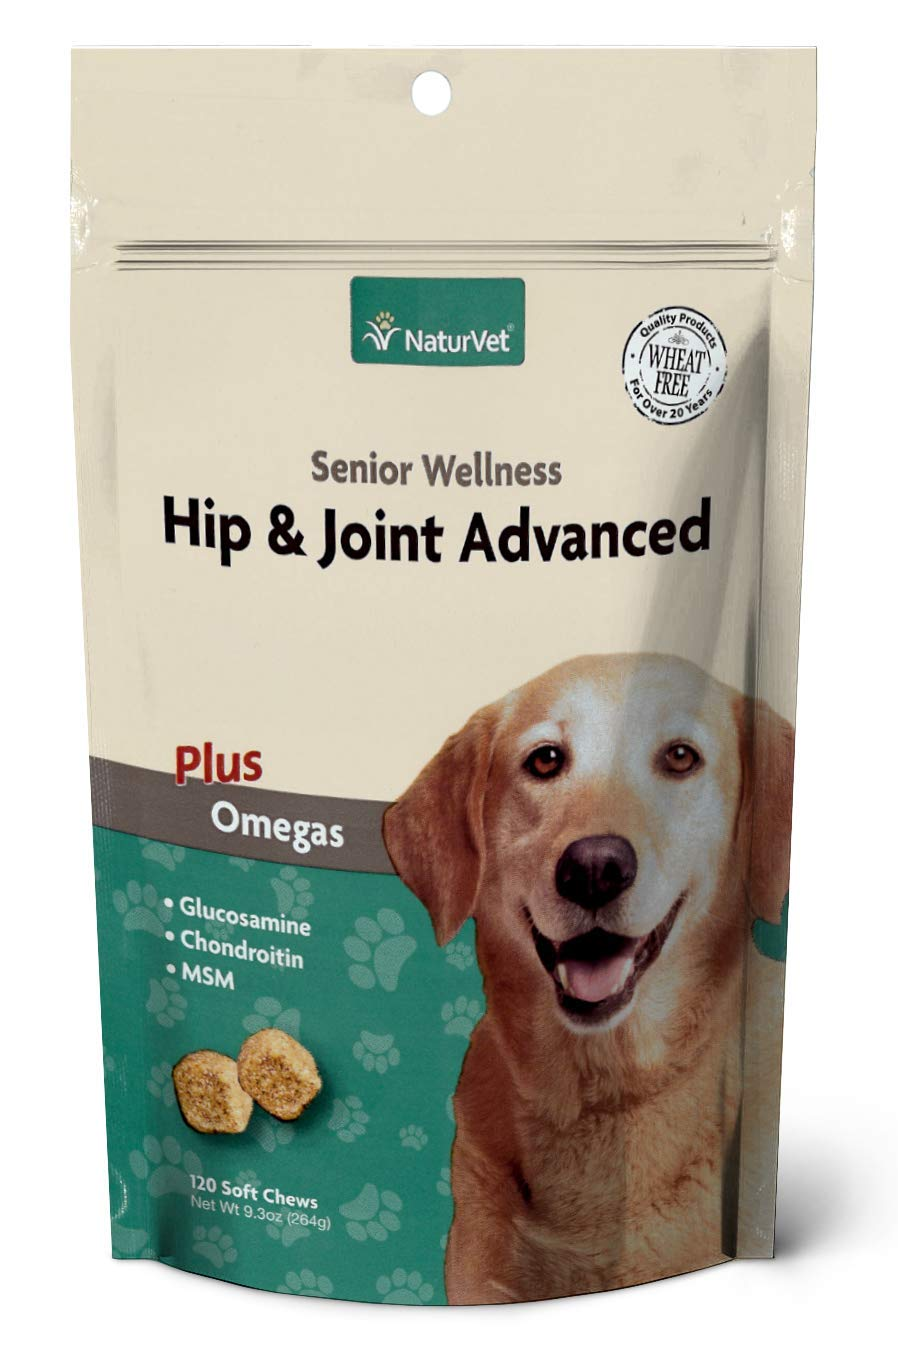 NaturVet – Senior Wellness Hip & Joint Advanced Plus Omegas – Help Support Your Pet's Healthy Hip & Joint Function – Supports Joints, Cartilage & Connective Tissues – 120 Soft Chews